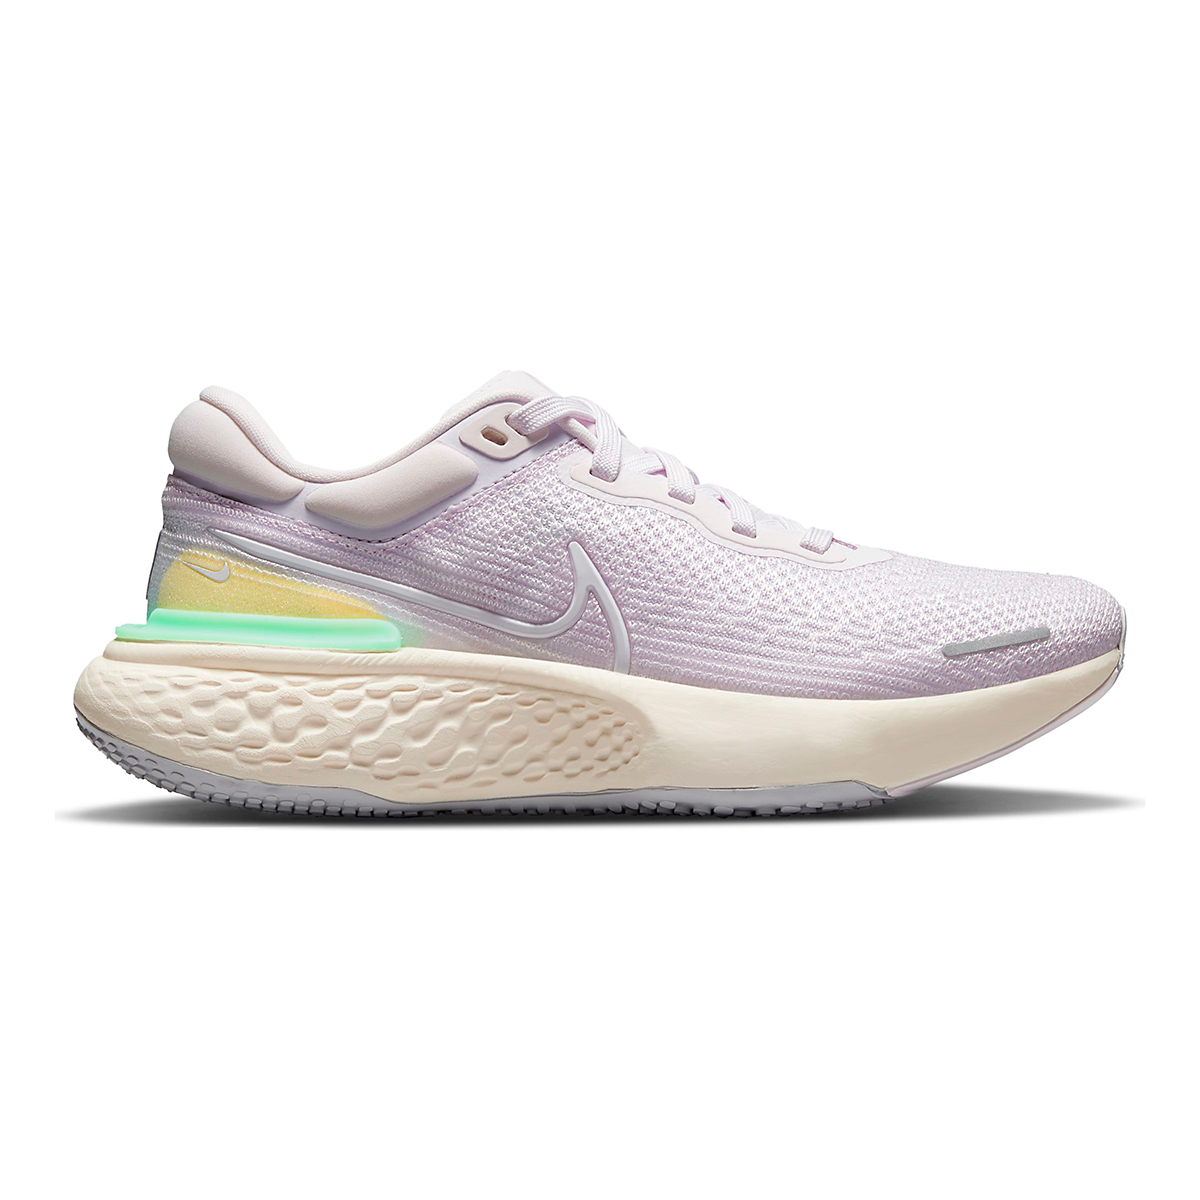 Women's Nike Zoomx Invincible Run FlyKnit Running Shoe - Color: Light Violet/White/Infinite Lilac - Size: 5 - Width: Regular, Light Violet/White/Infinite Lilac, large, image 1